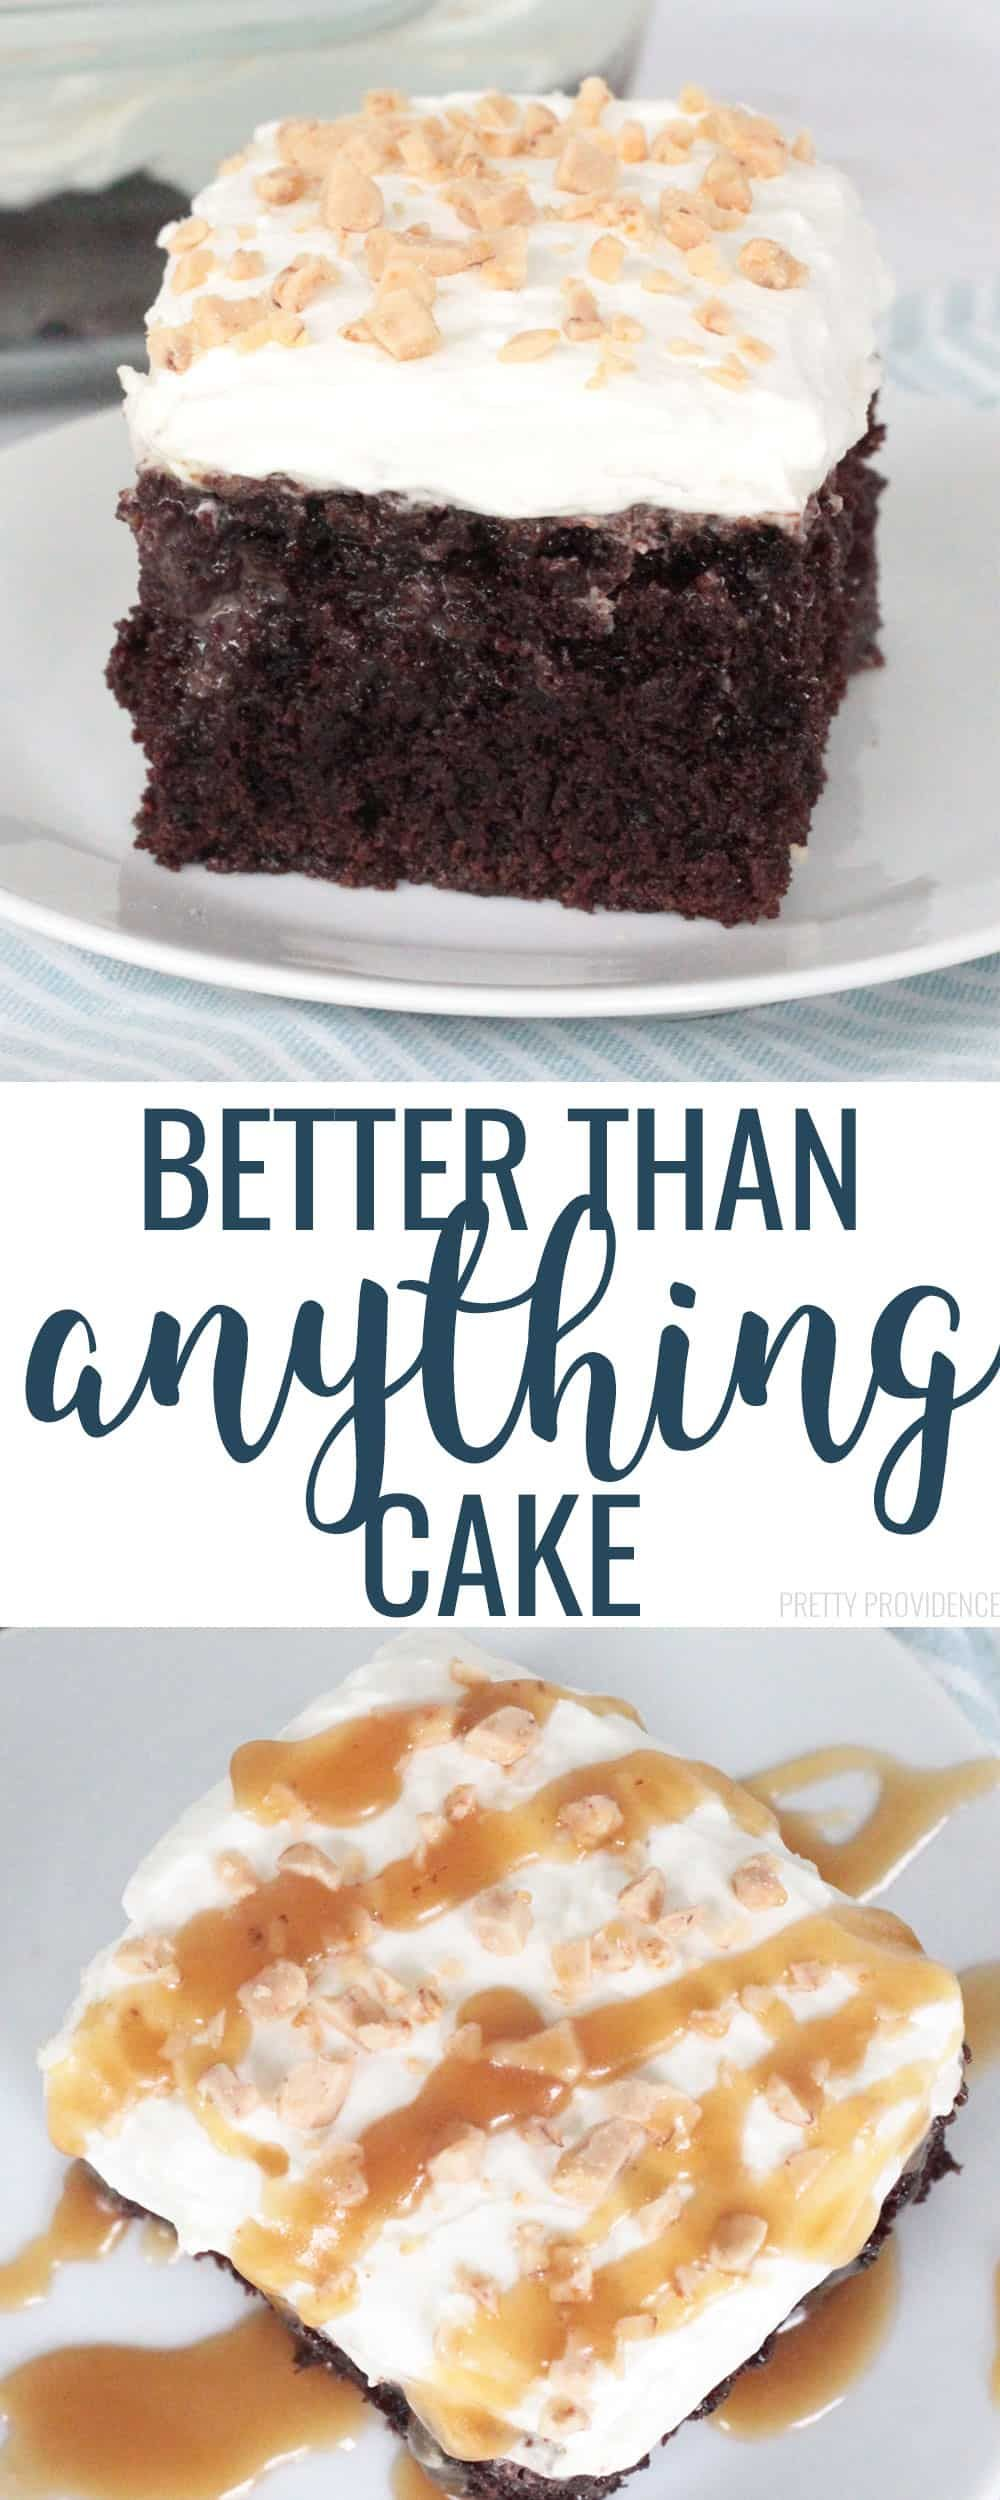 Better than anything cake recipe best cake recipes